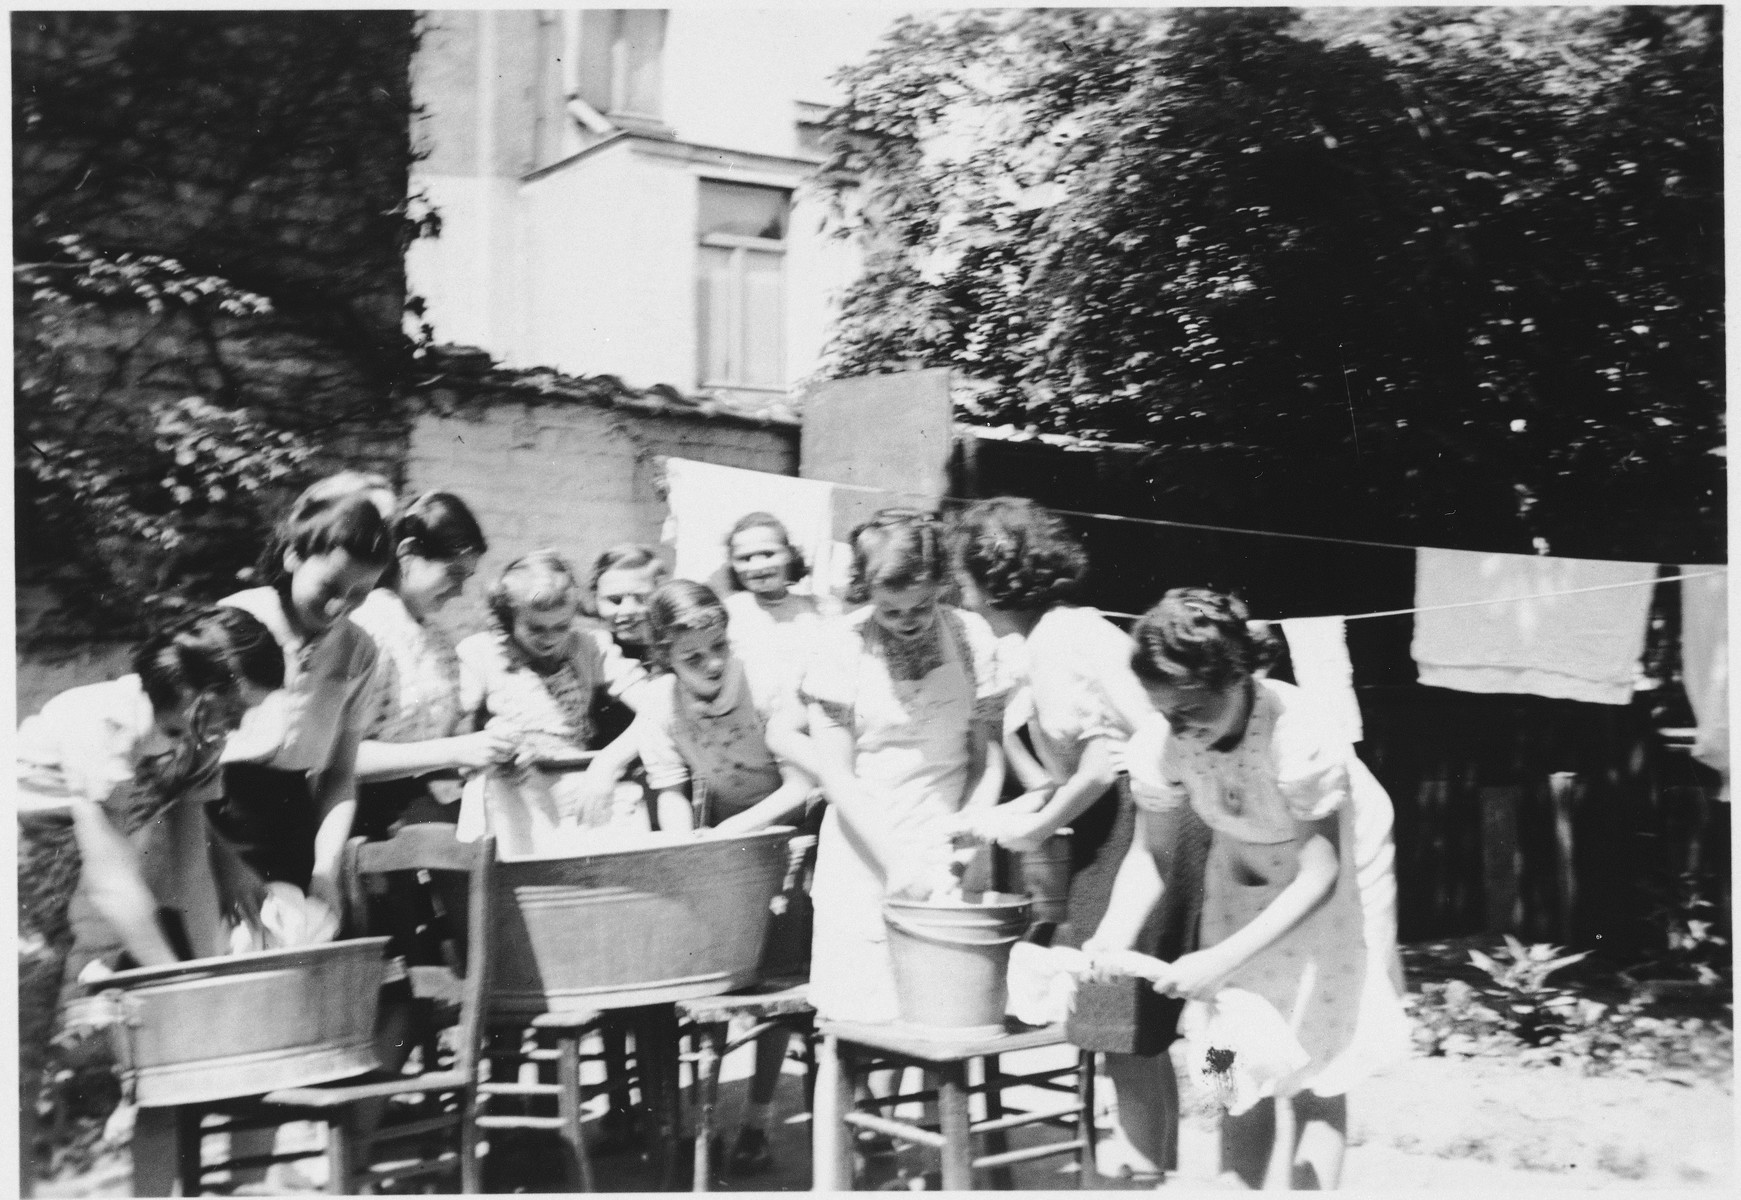 Women and girls do the laundry outside in metal tubs at the Orphelinat Israelite de Bruxelles children's home on the rue des Patriotes.